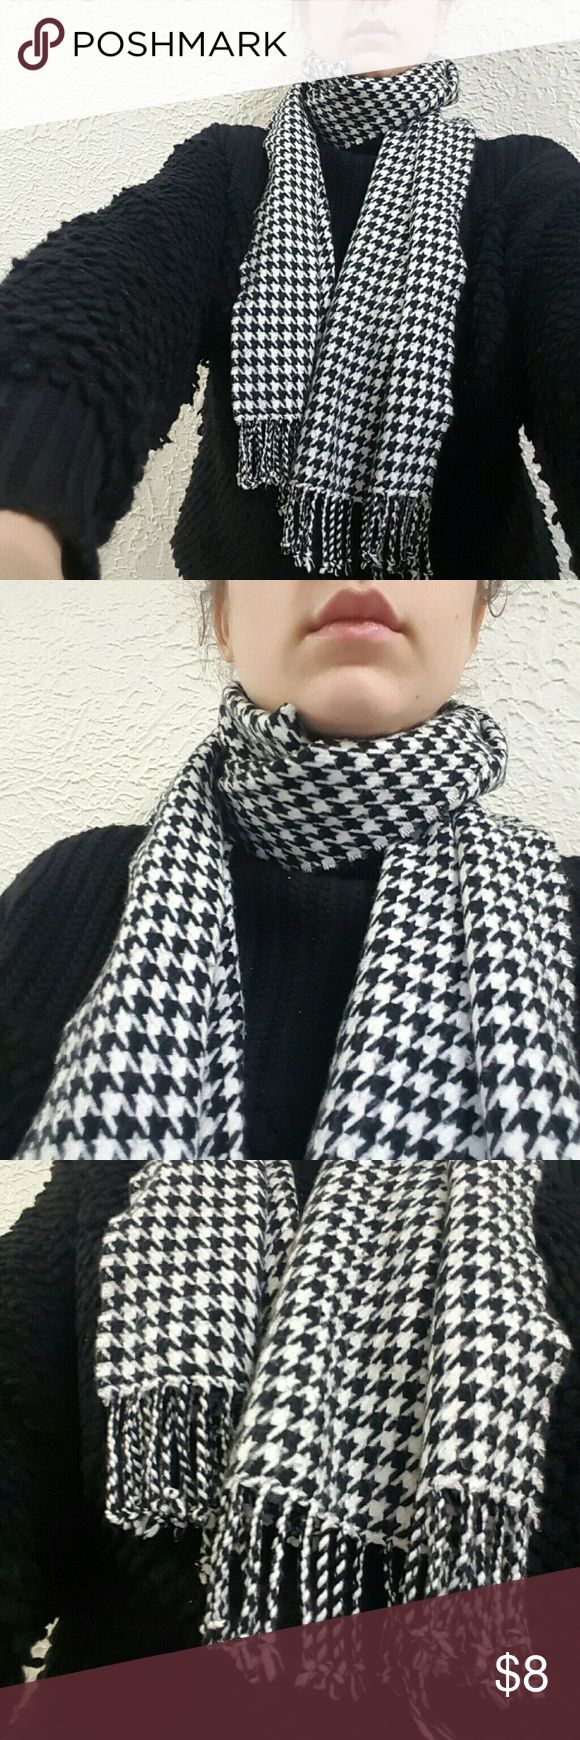 Houndstooth Scarf Black and white print houndstooth scarf with tassels. No tag, don't know the fabric. Please do not buy if you have any allergies!! Accessories Scarves & Wraps